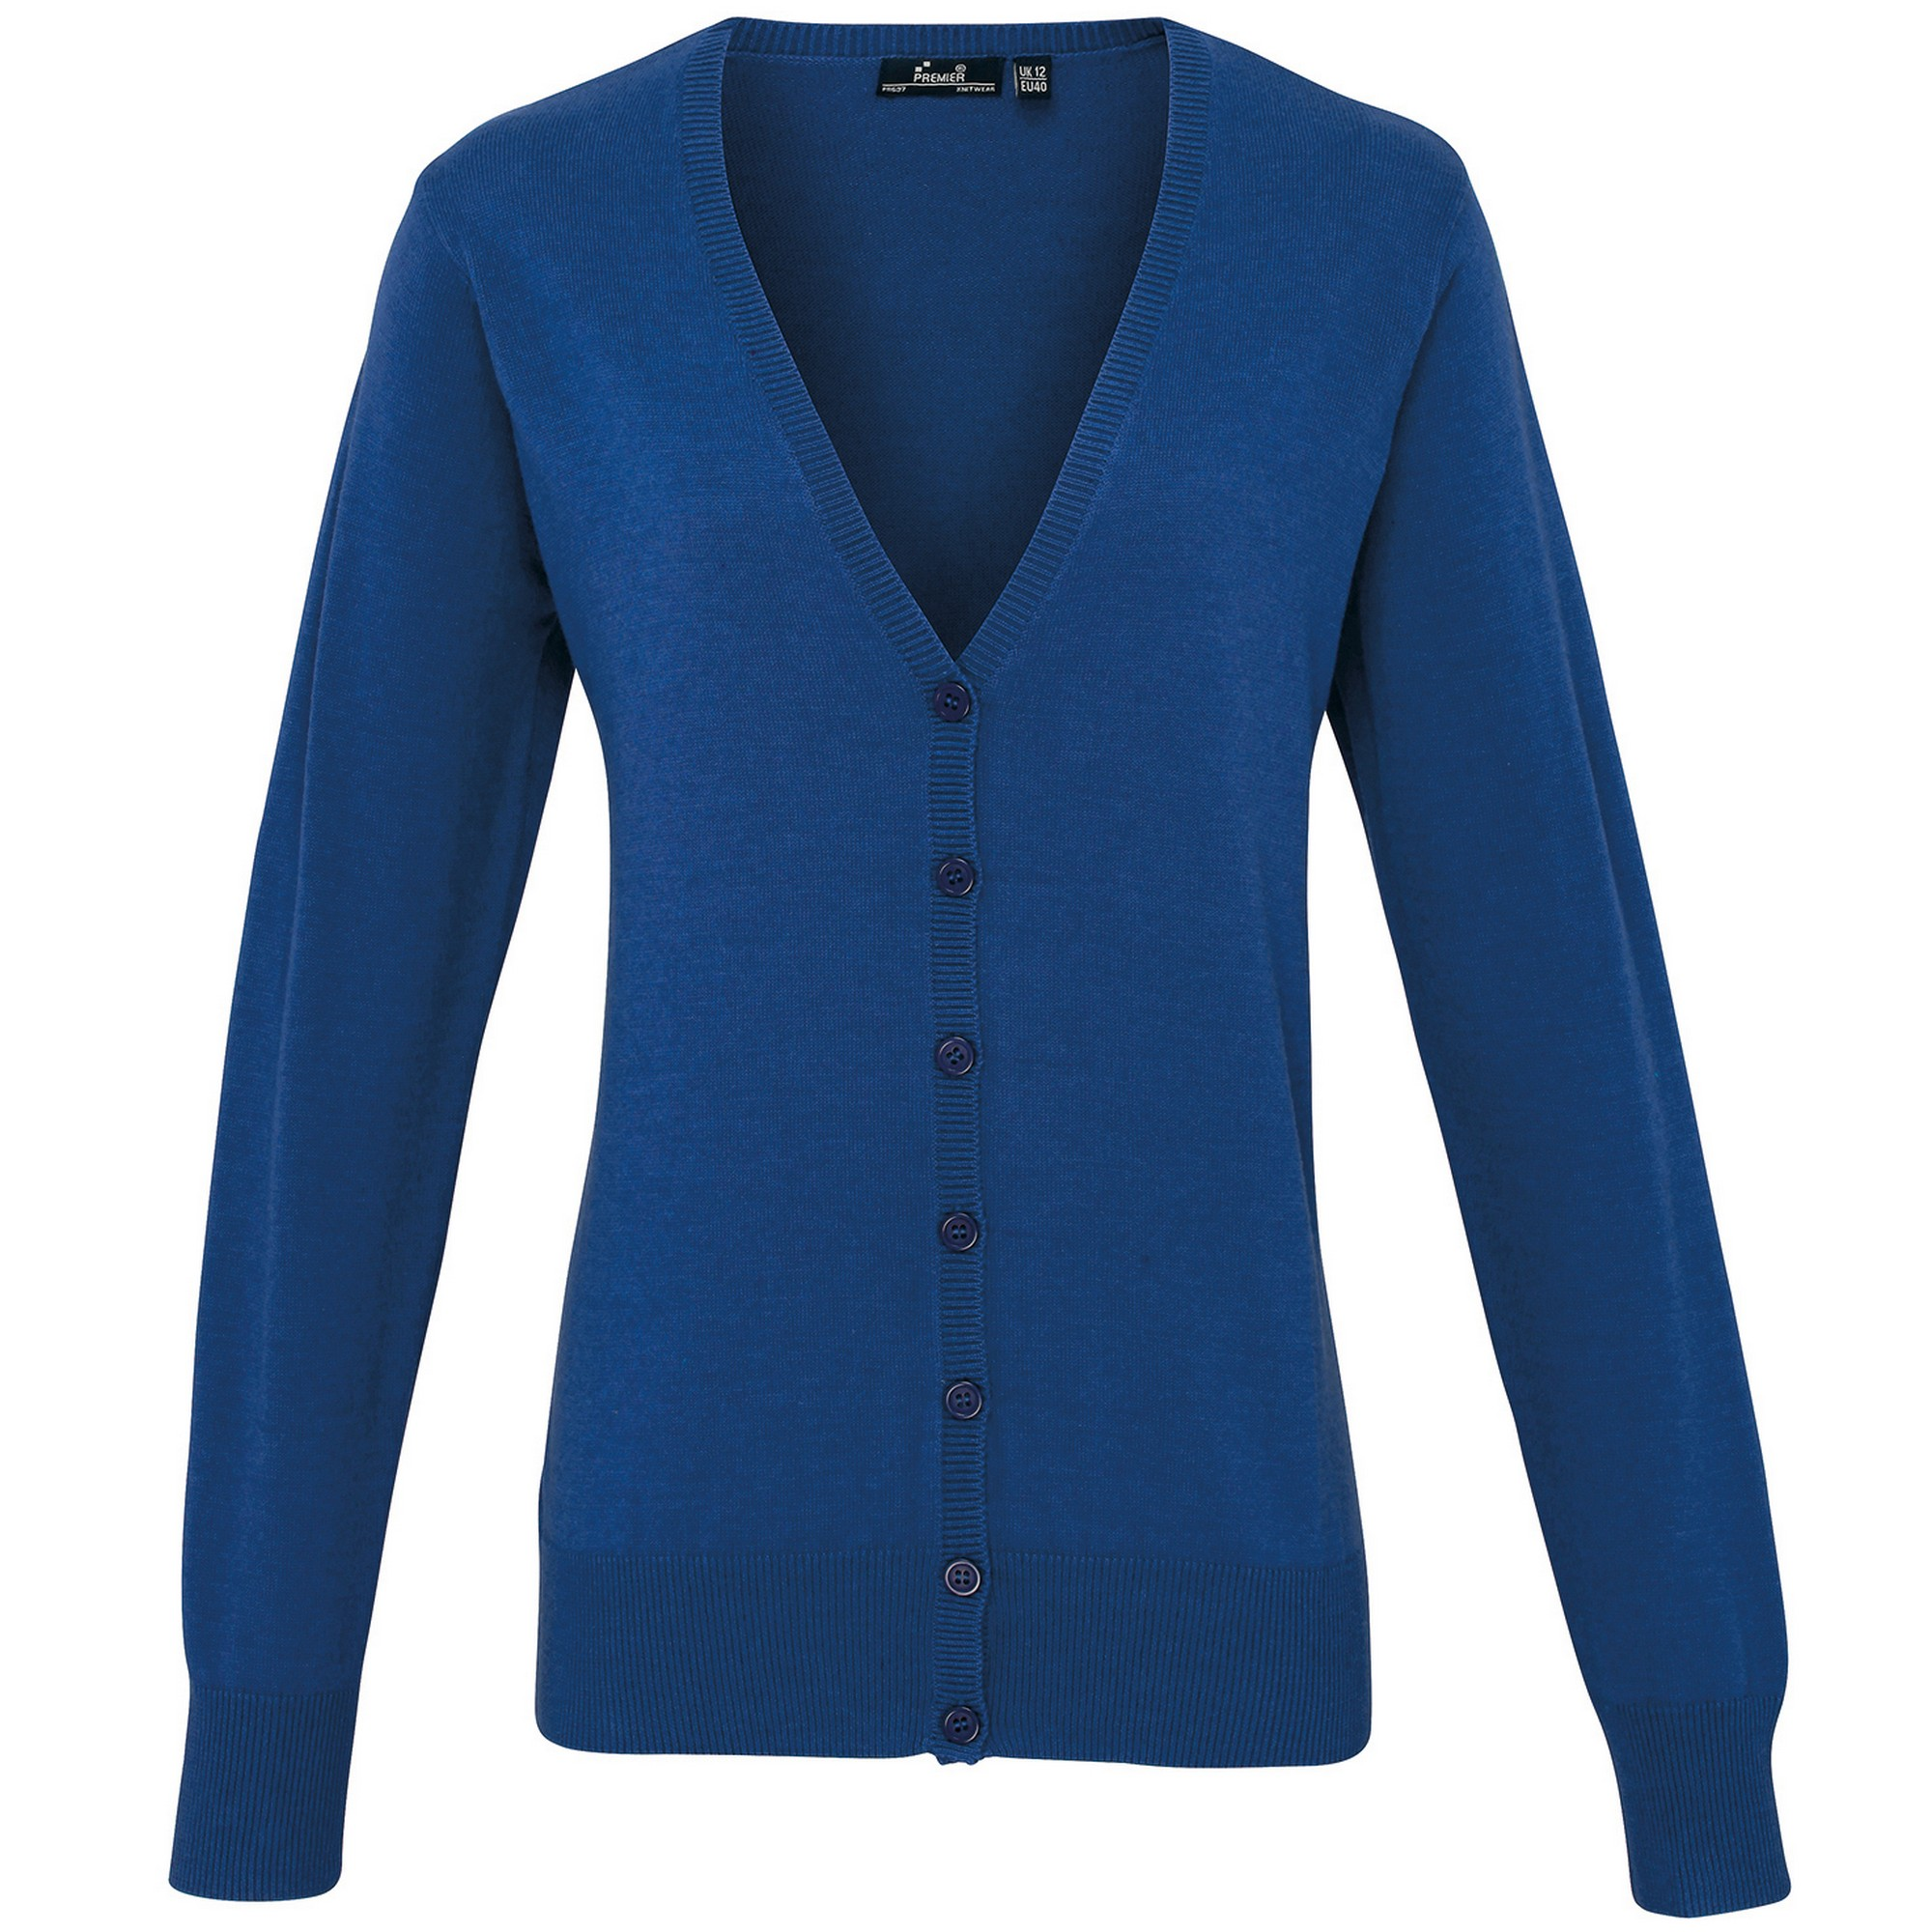 Premier Womens/Ladies Button Through Long Sleeve V-neck Knitted Cardigan (16) (Royal)